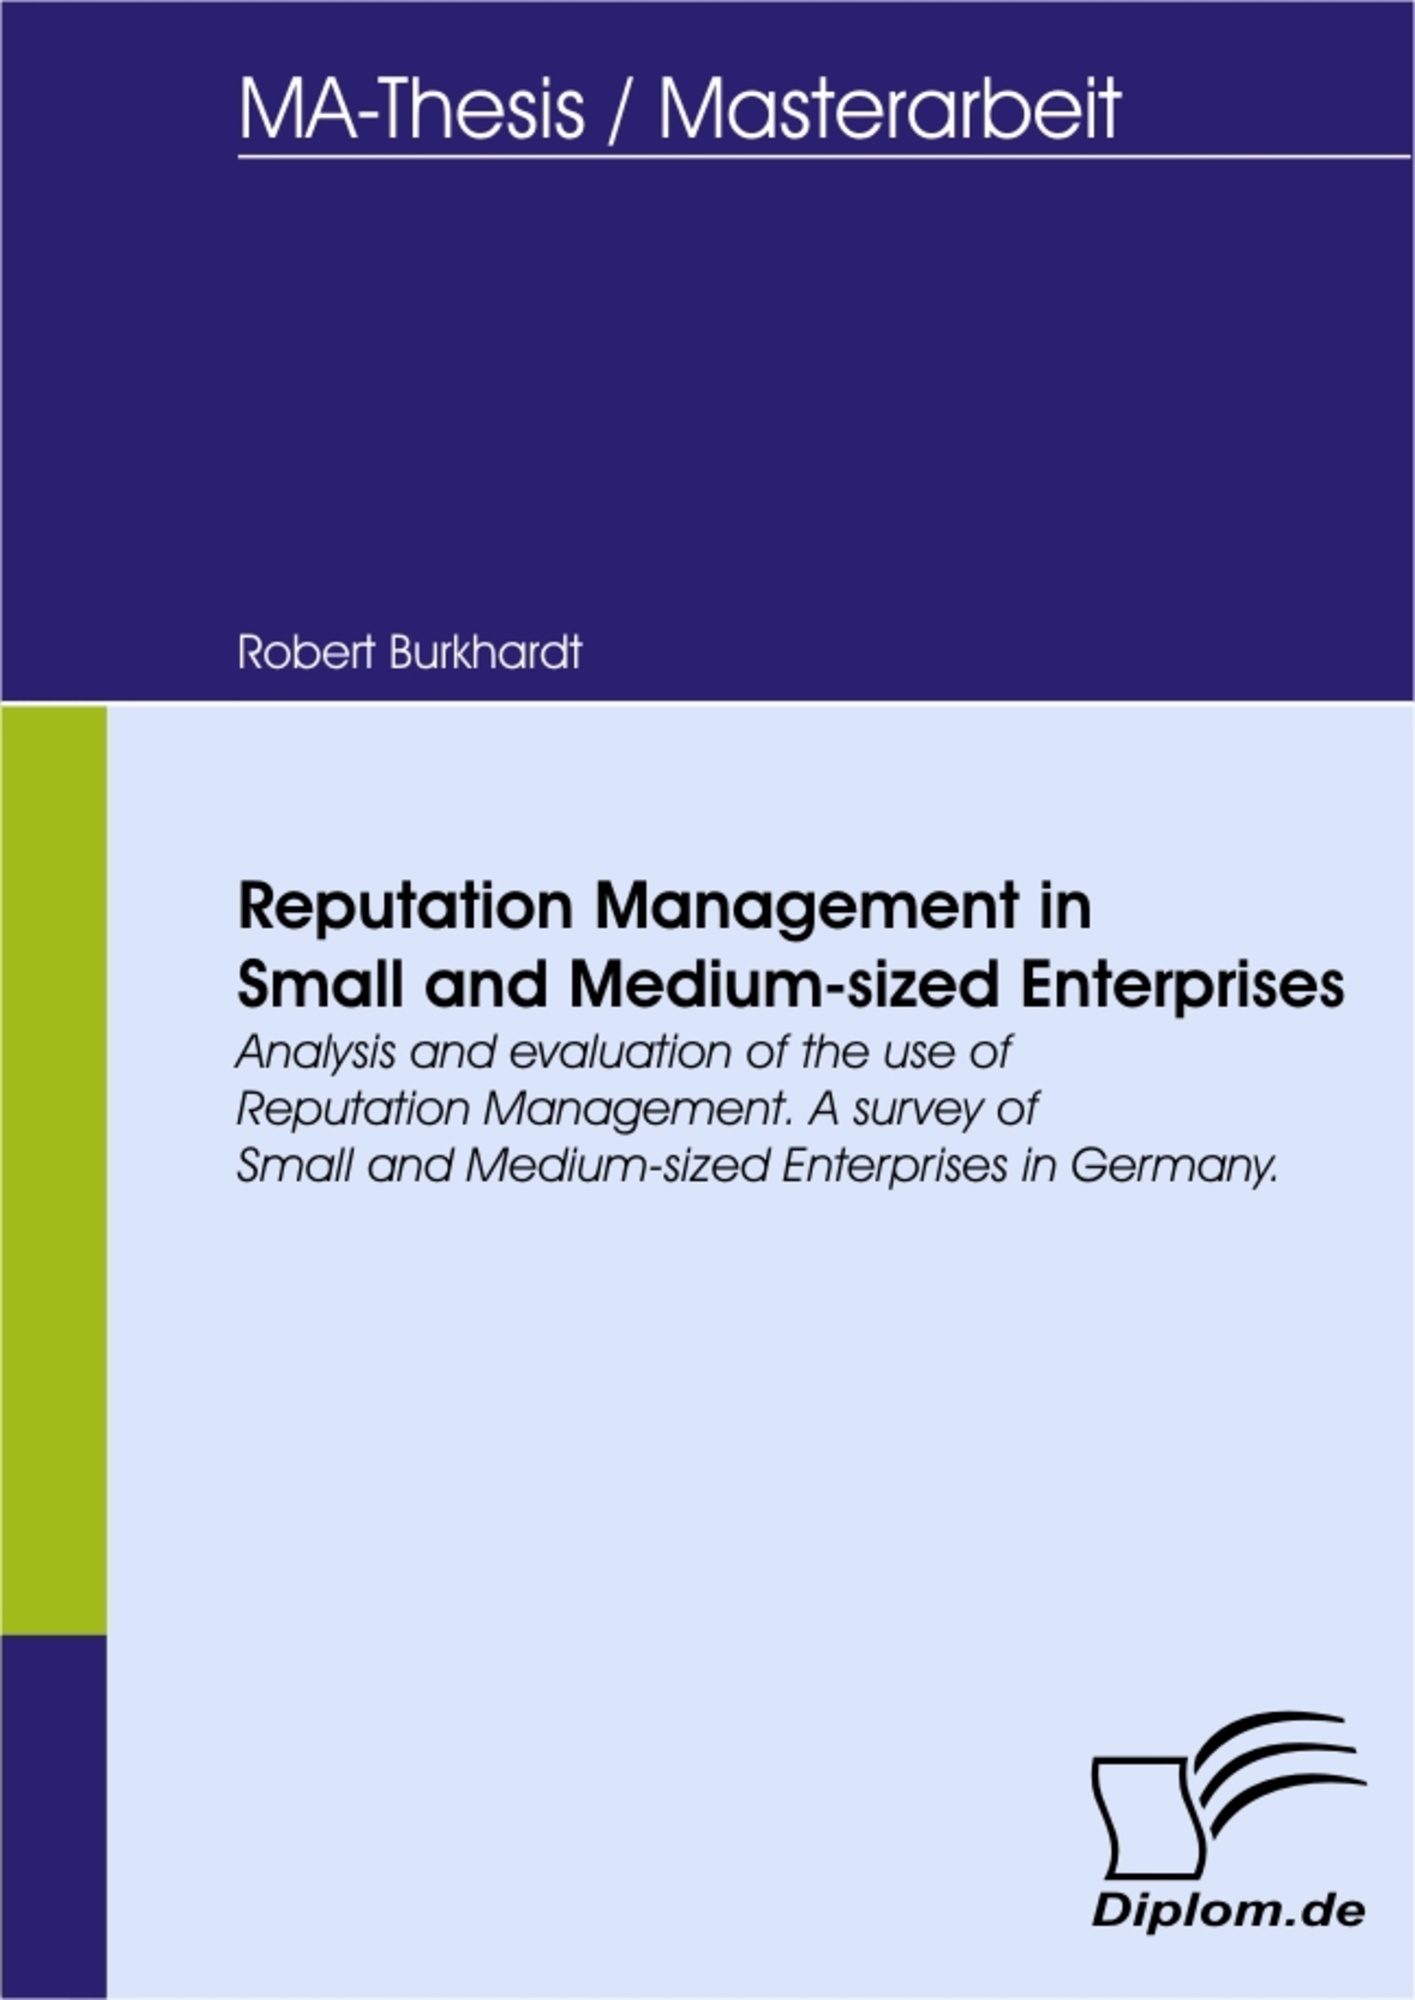 Reputation Management in Small and Medium-sized Enterprises